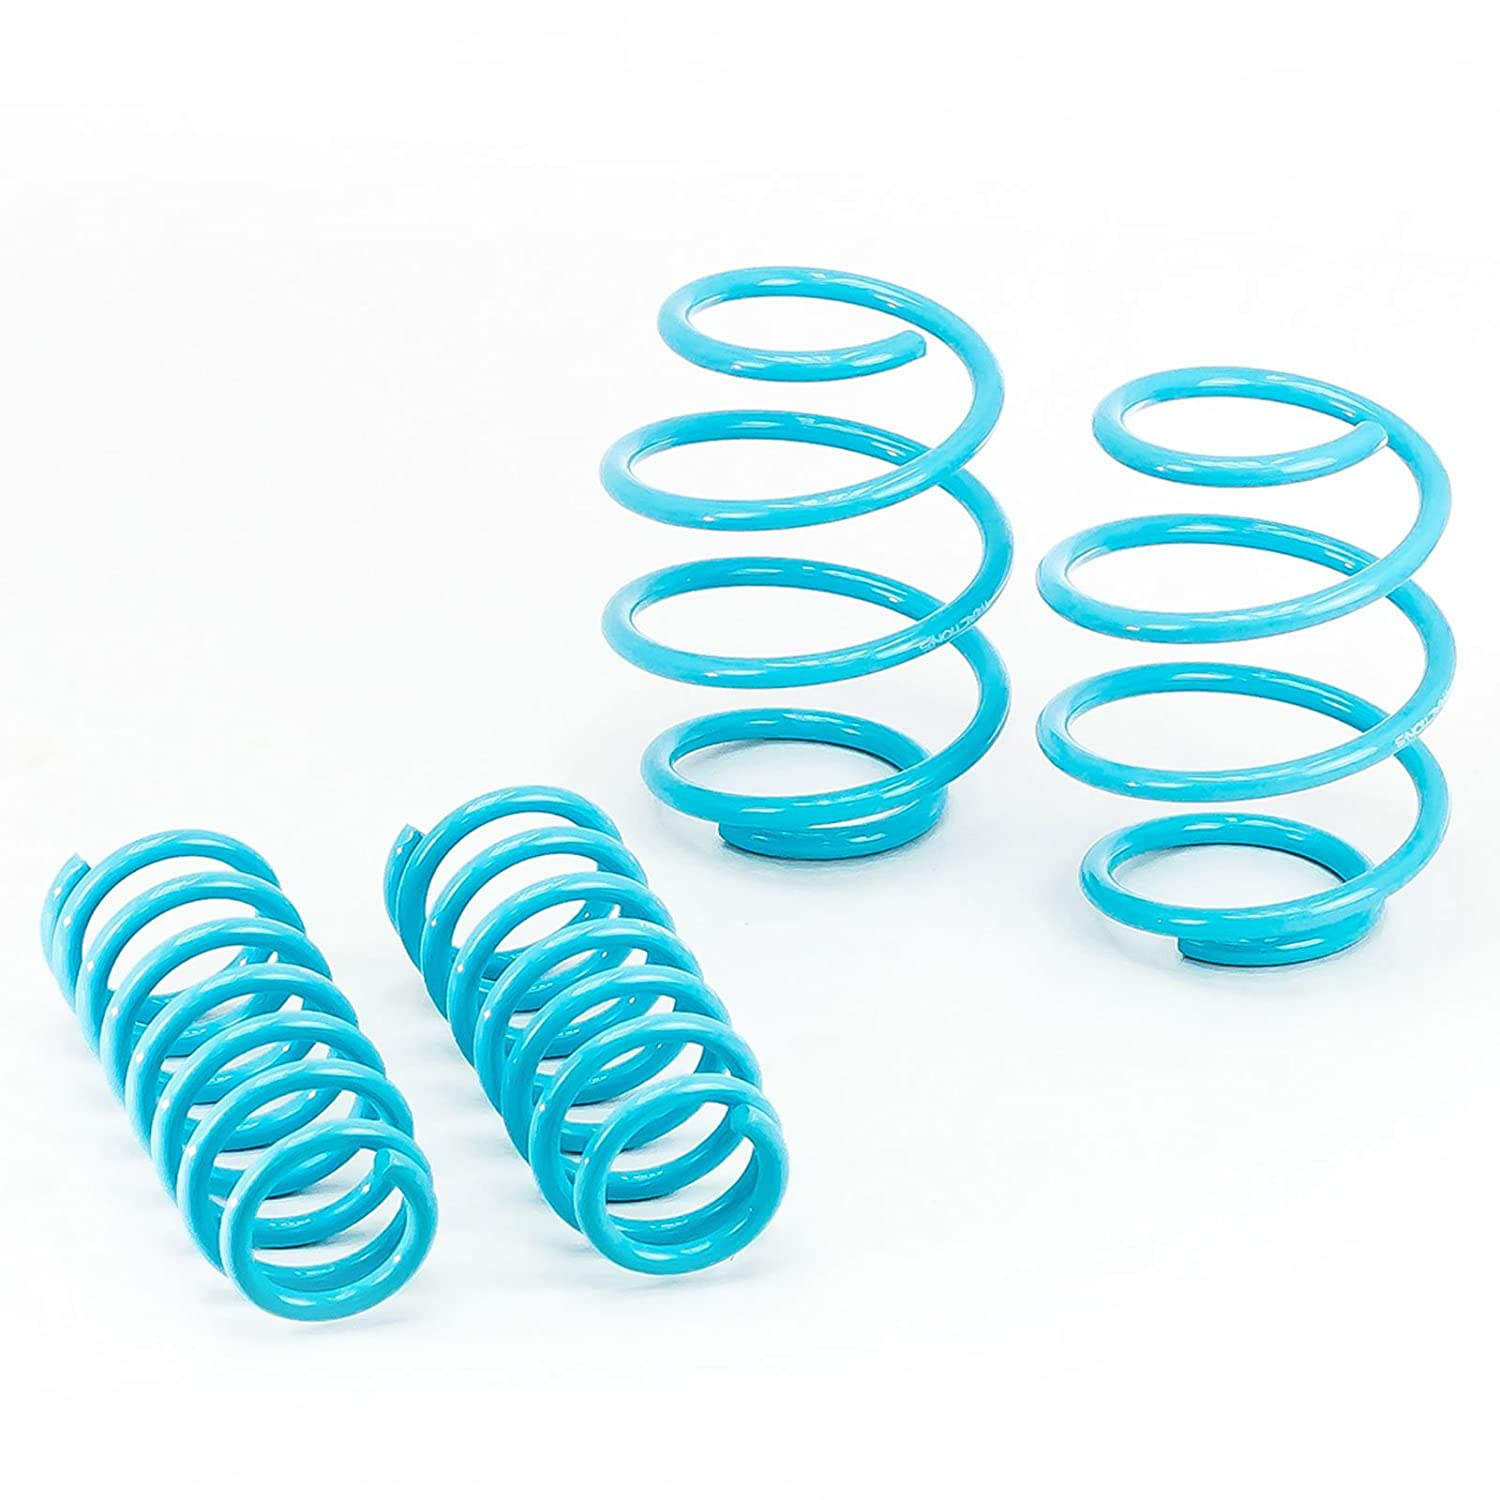 Godspeed LS-TS-HI-0003 Traction-S Performance Lowering Springs Improve Overall Handling And Steering Response